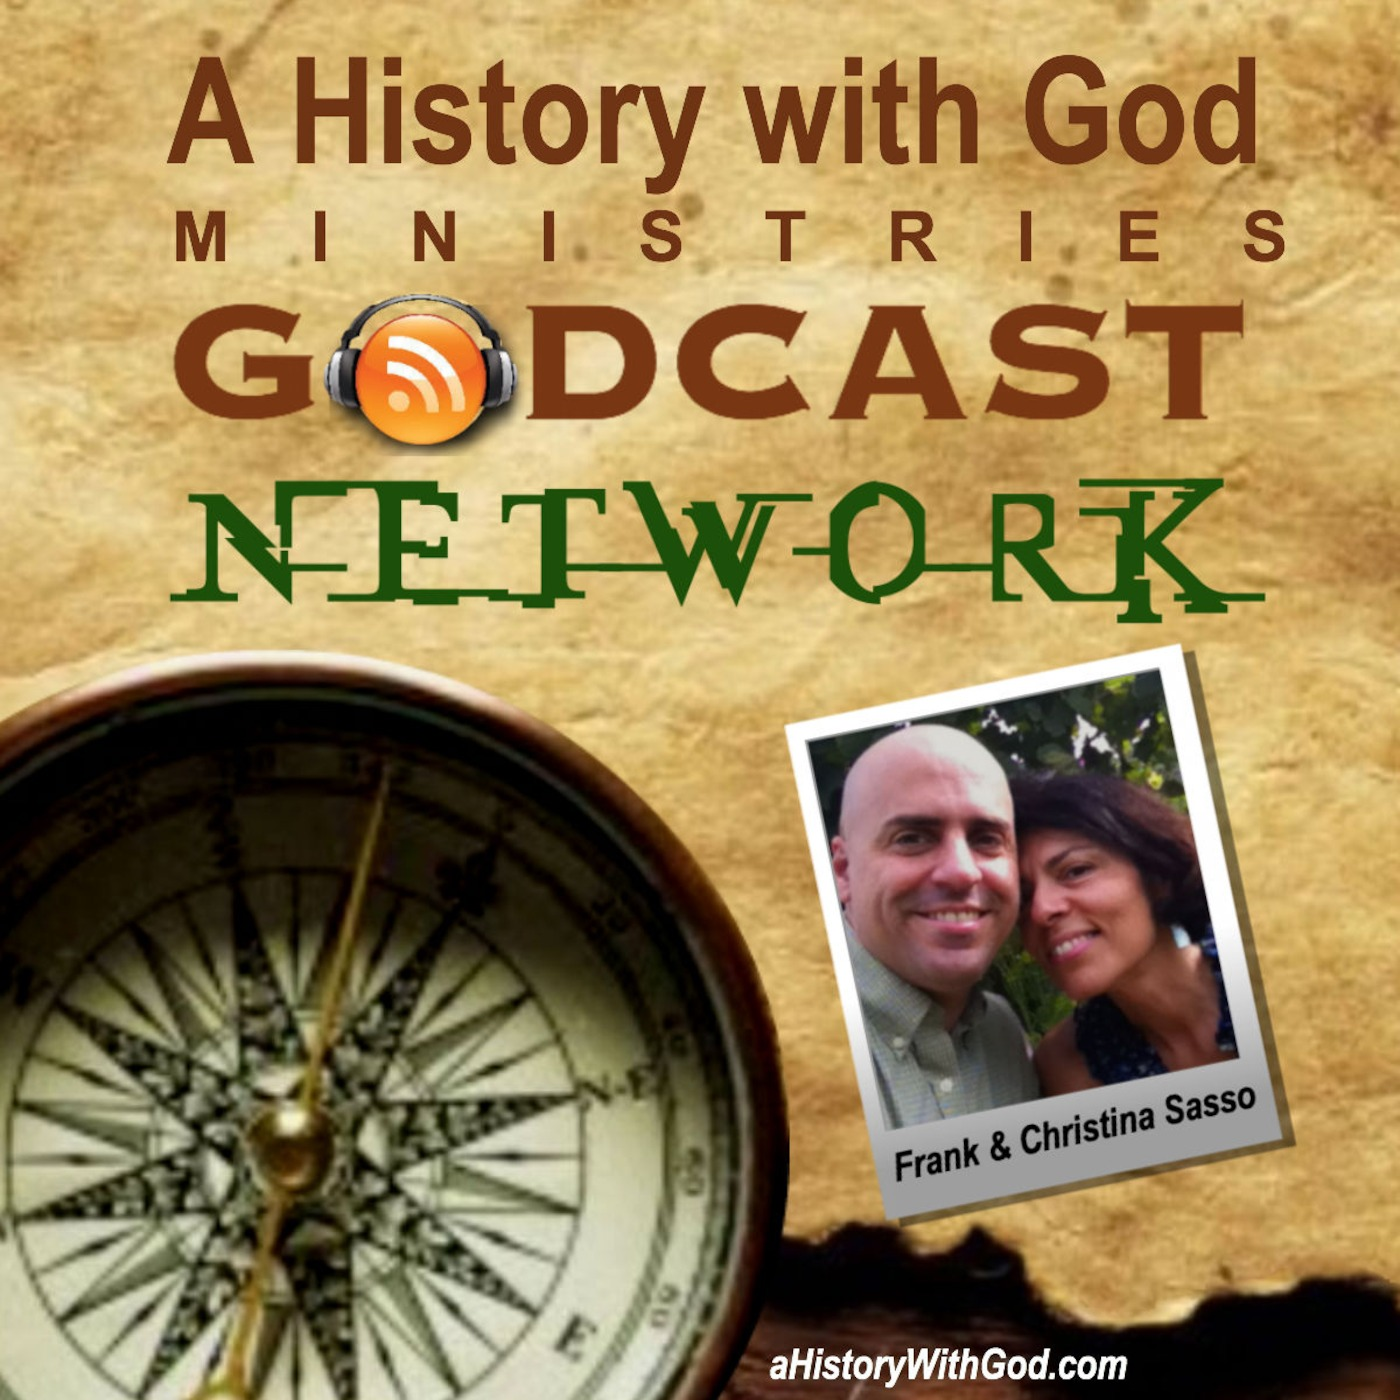 A History With GODcast